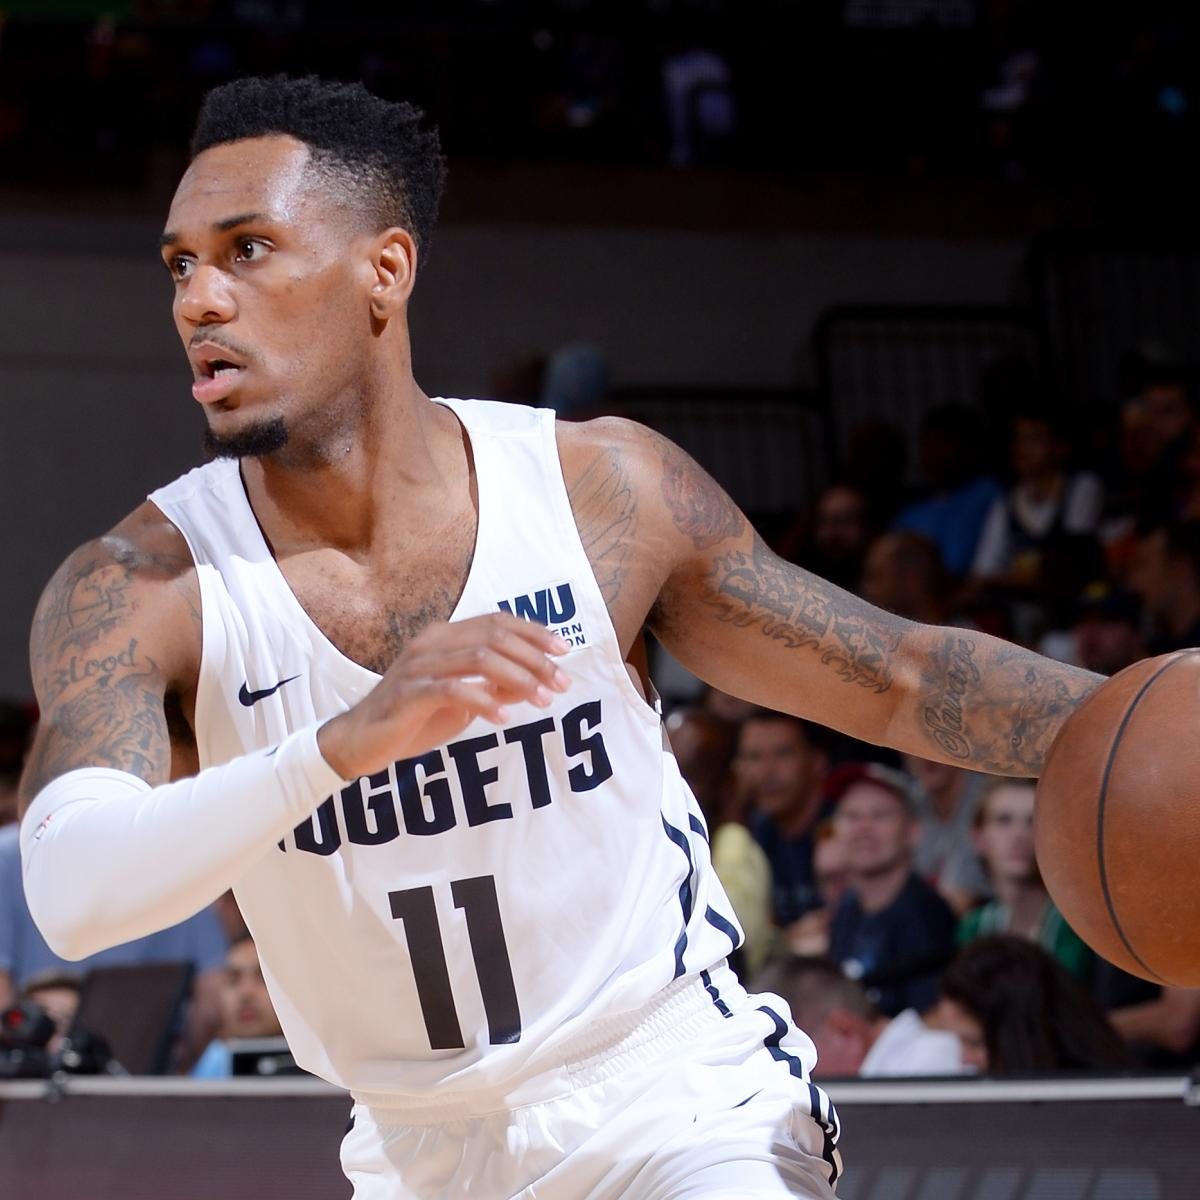 NBA Summer League 2018: Wednesday Schedule, Latest Las Vegas Standings and Stats